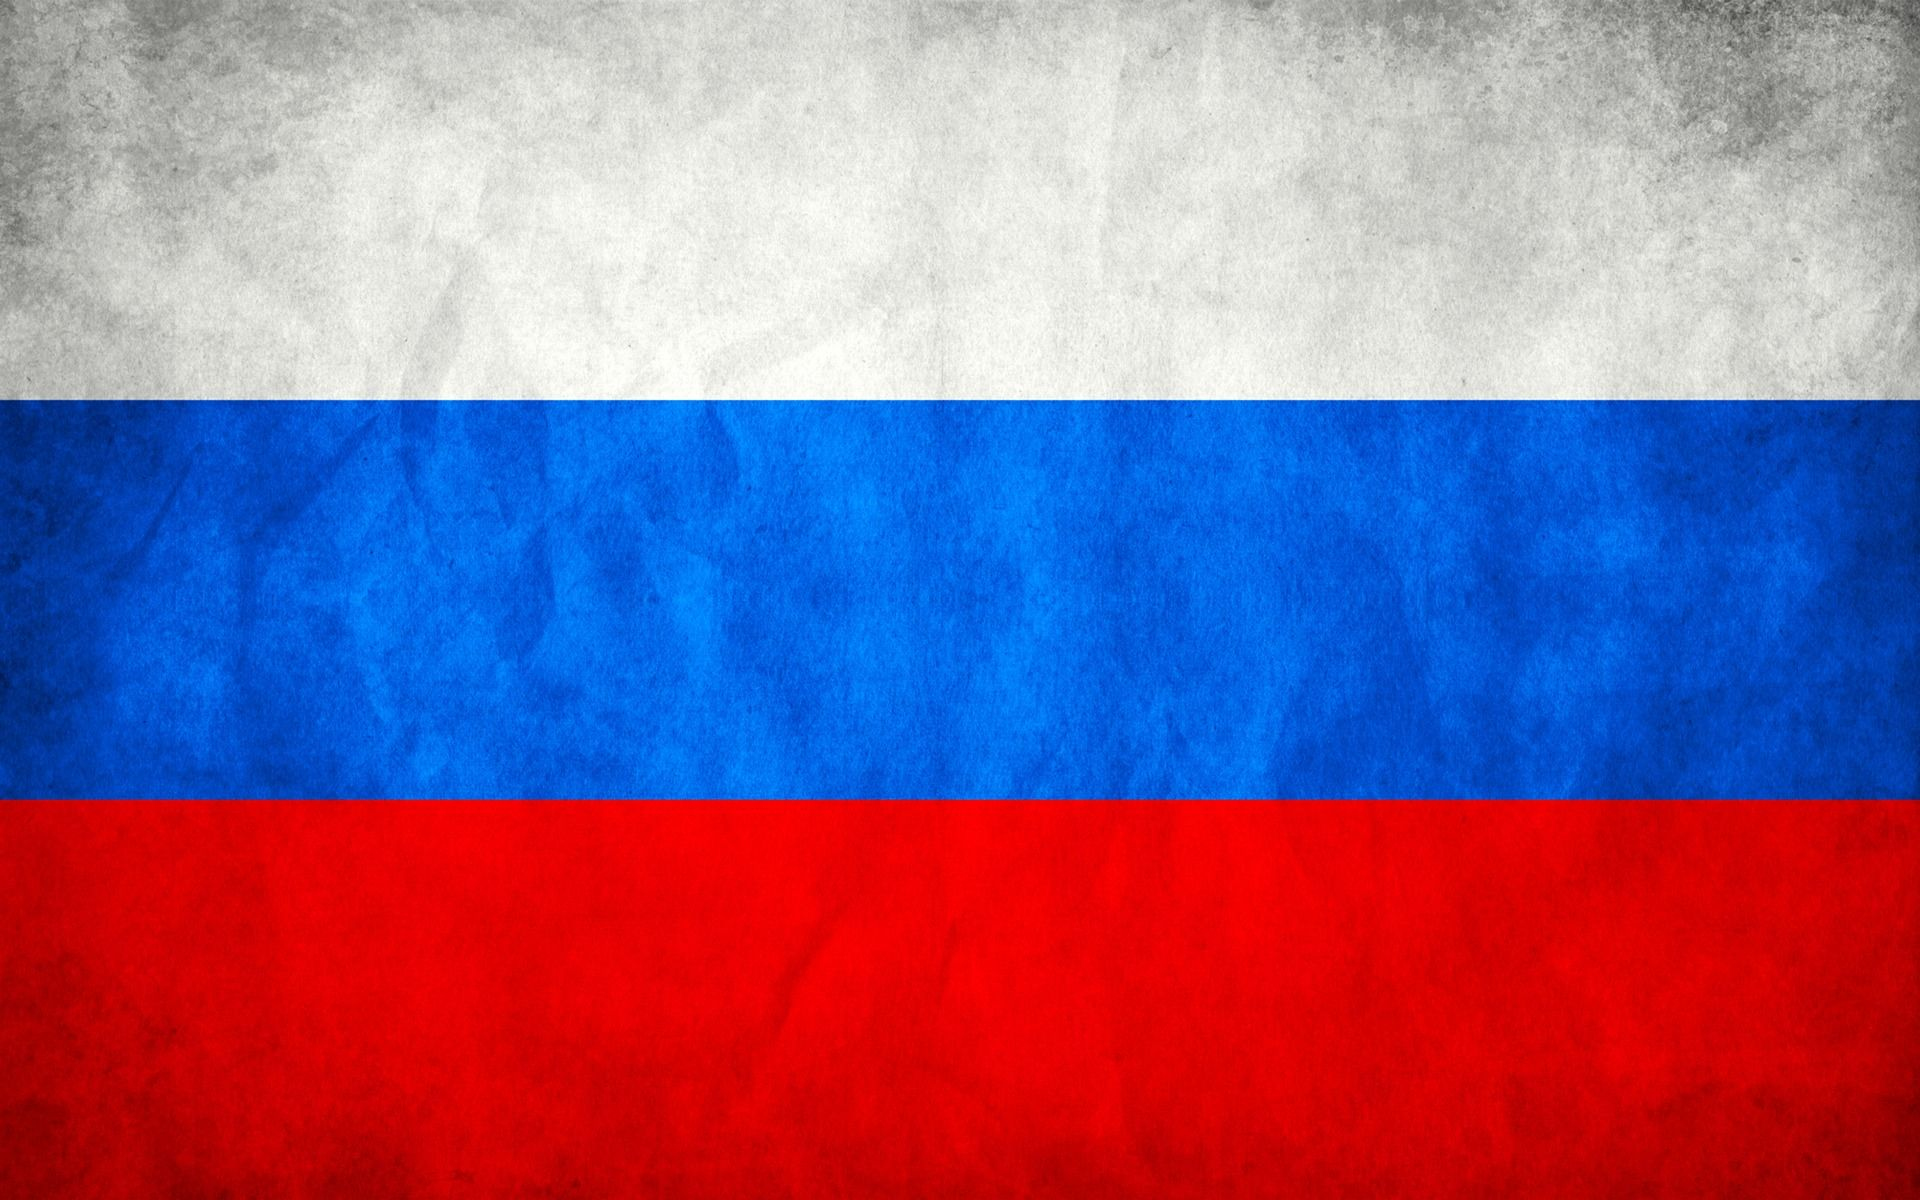 Russia grunge flag photo